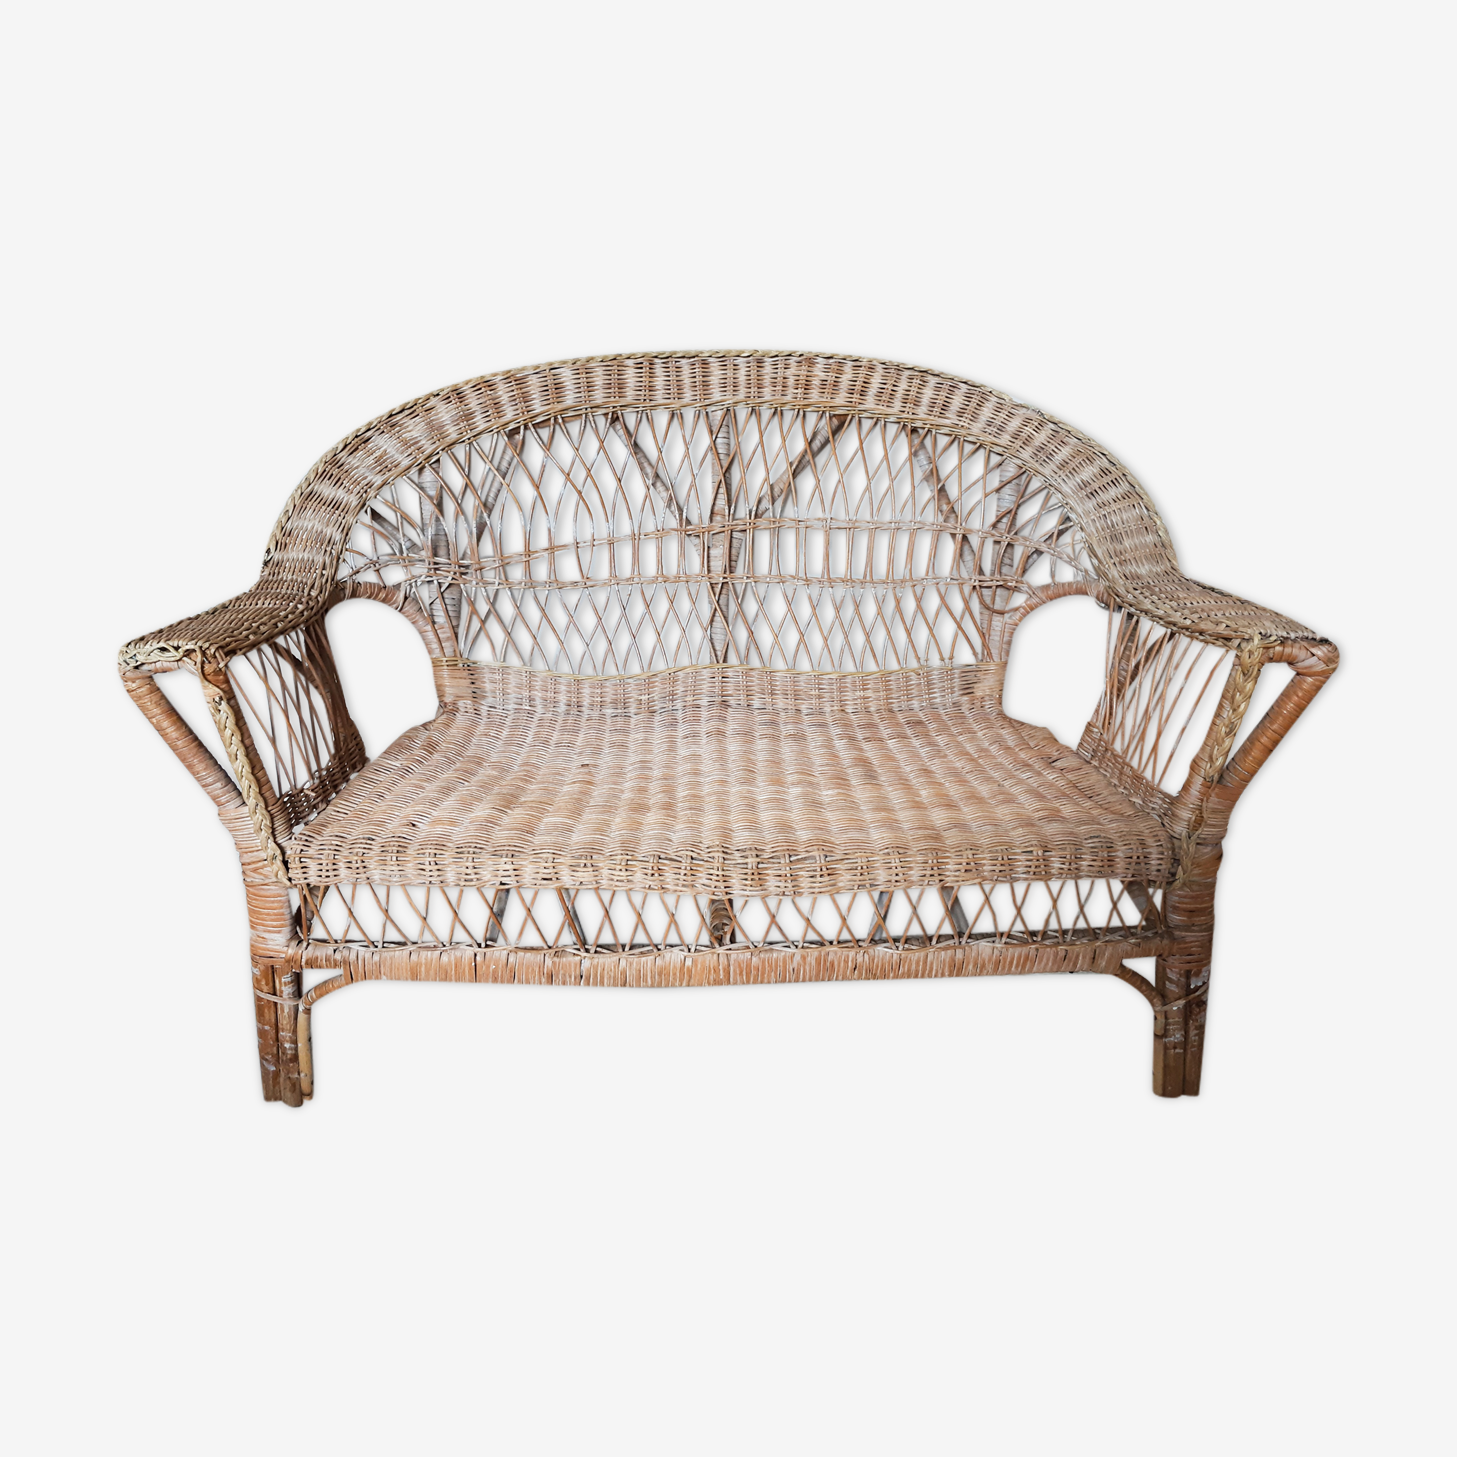 Childrens rattan sofa